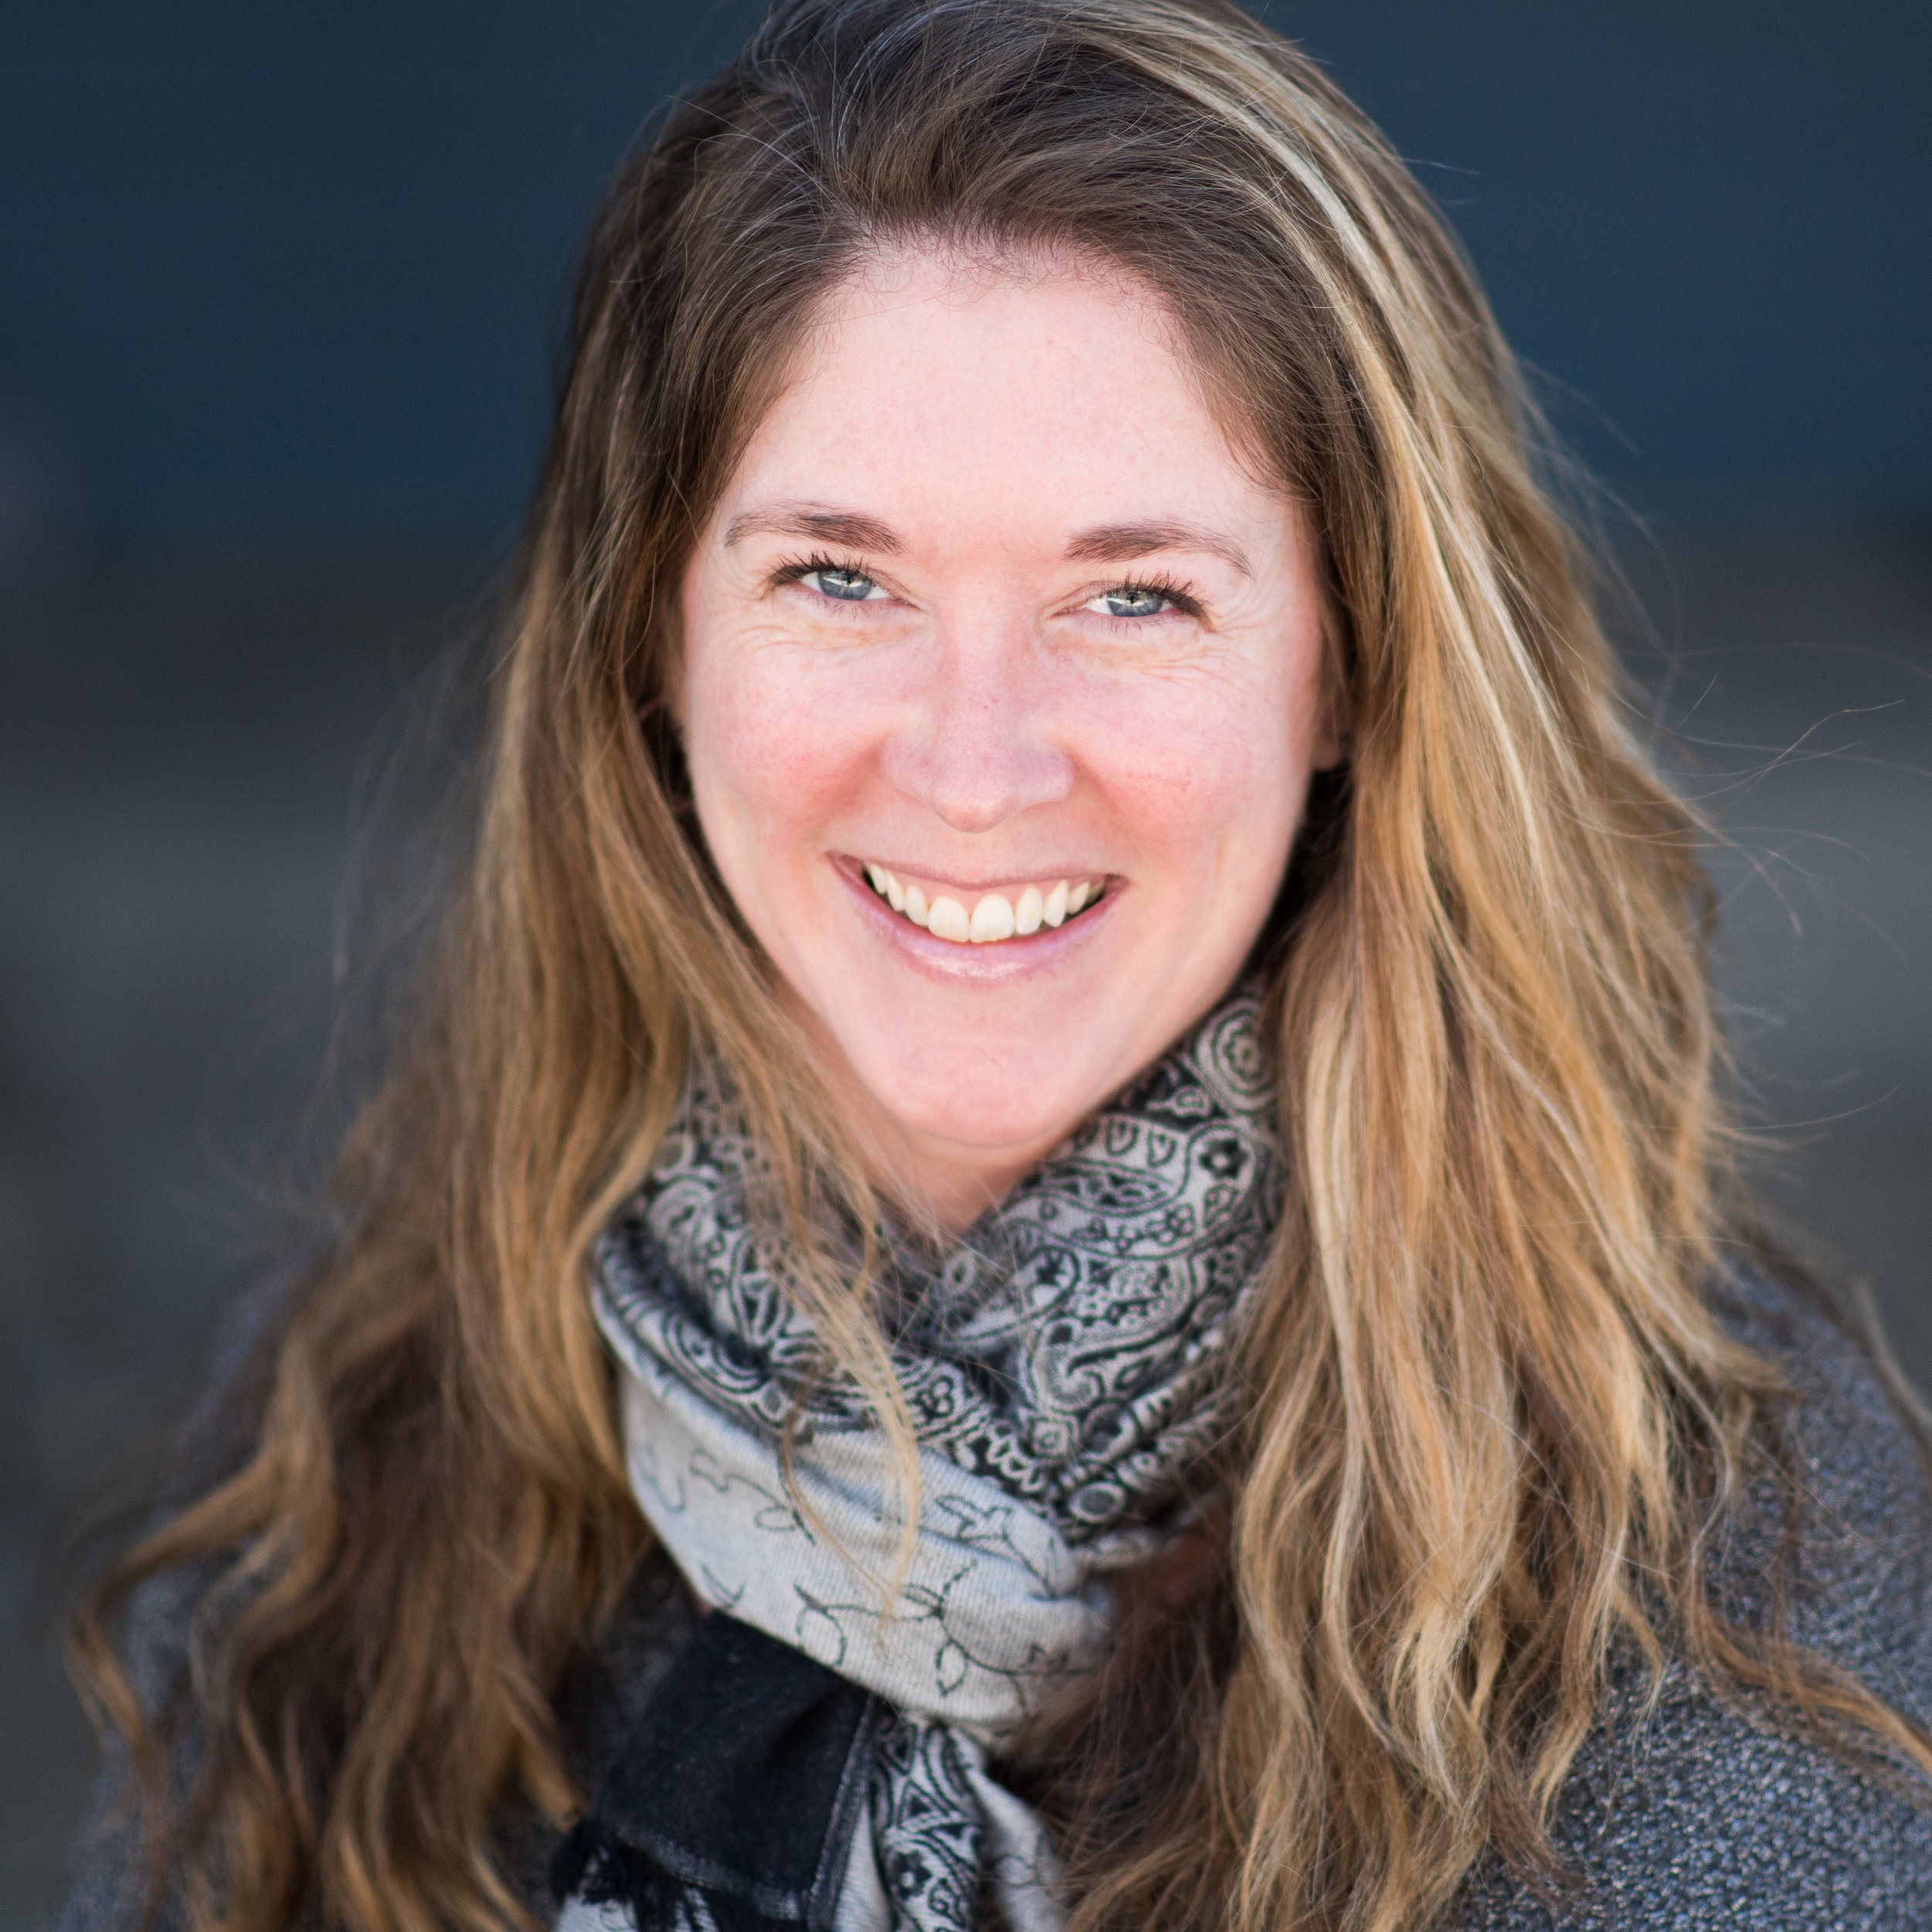 Jessica Adams, LCSW - Jessica founded Inner Truth Consulting in 2018 to bring her therapeutic and entrepreneurial guidance to the next level. Jessica offers an innovative form of coaching and psychotherapy that focuses on empowering her clients to apply tools for self-care, healing, and transformation. Through a clinical approach that is compassionate and conversational, Jessica brings the best out of her clients.